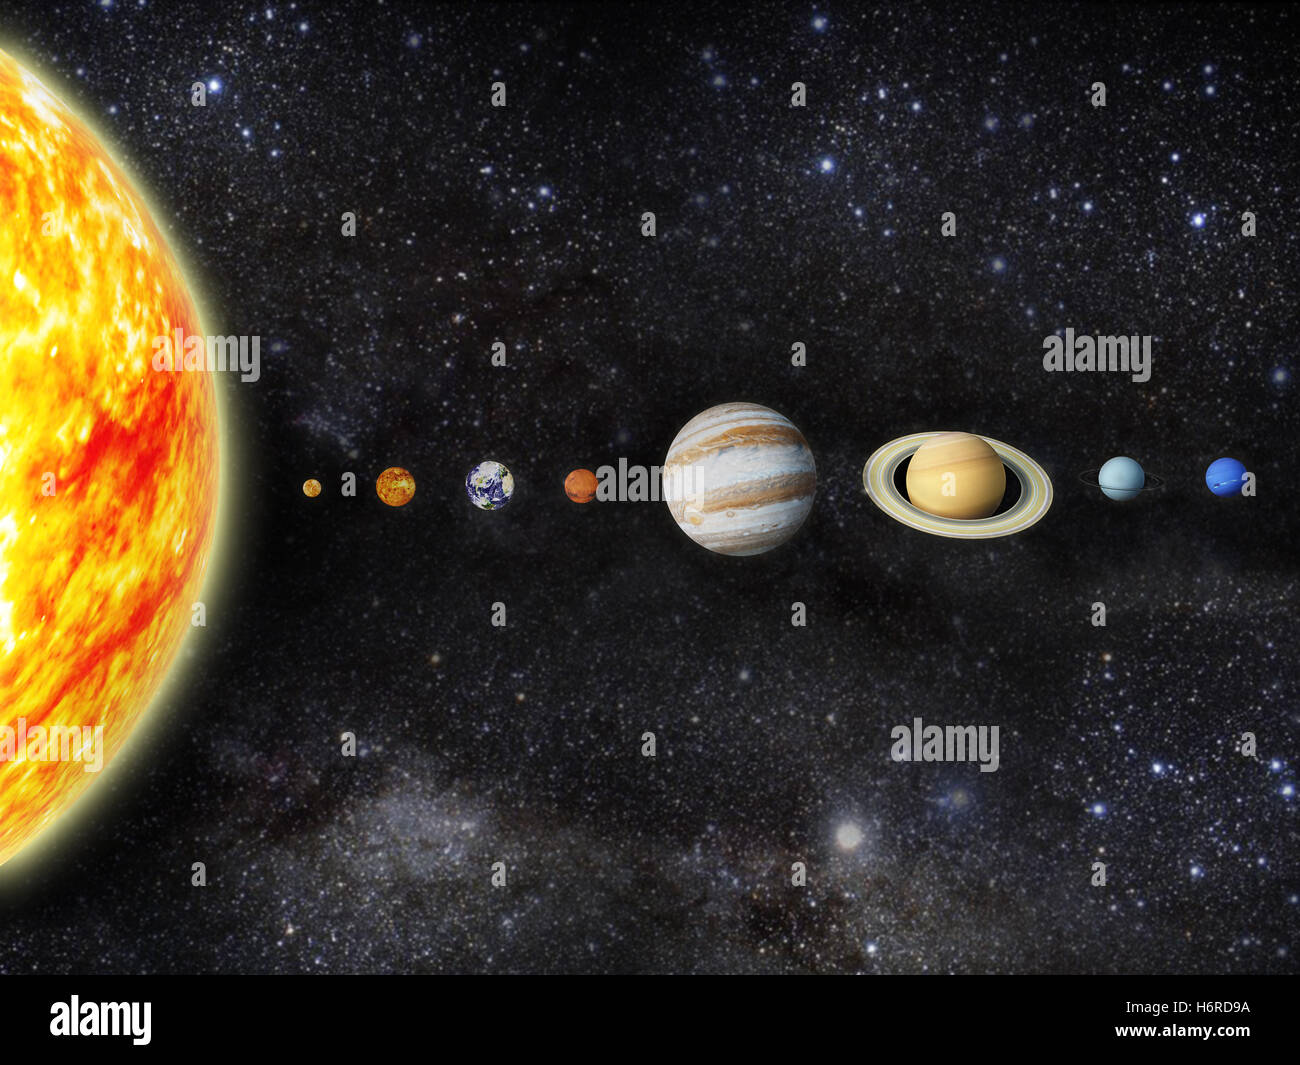 outer space astronomy - Stock Image